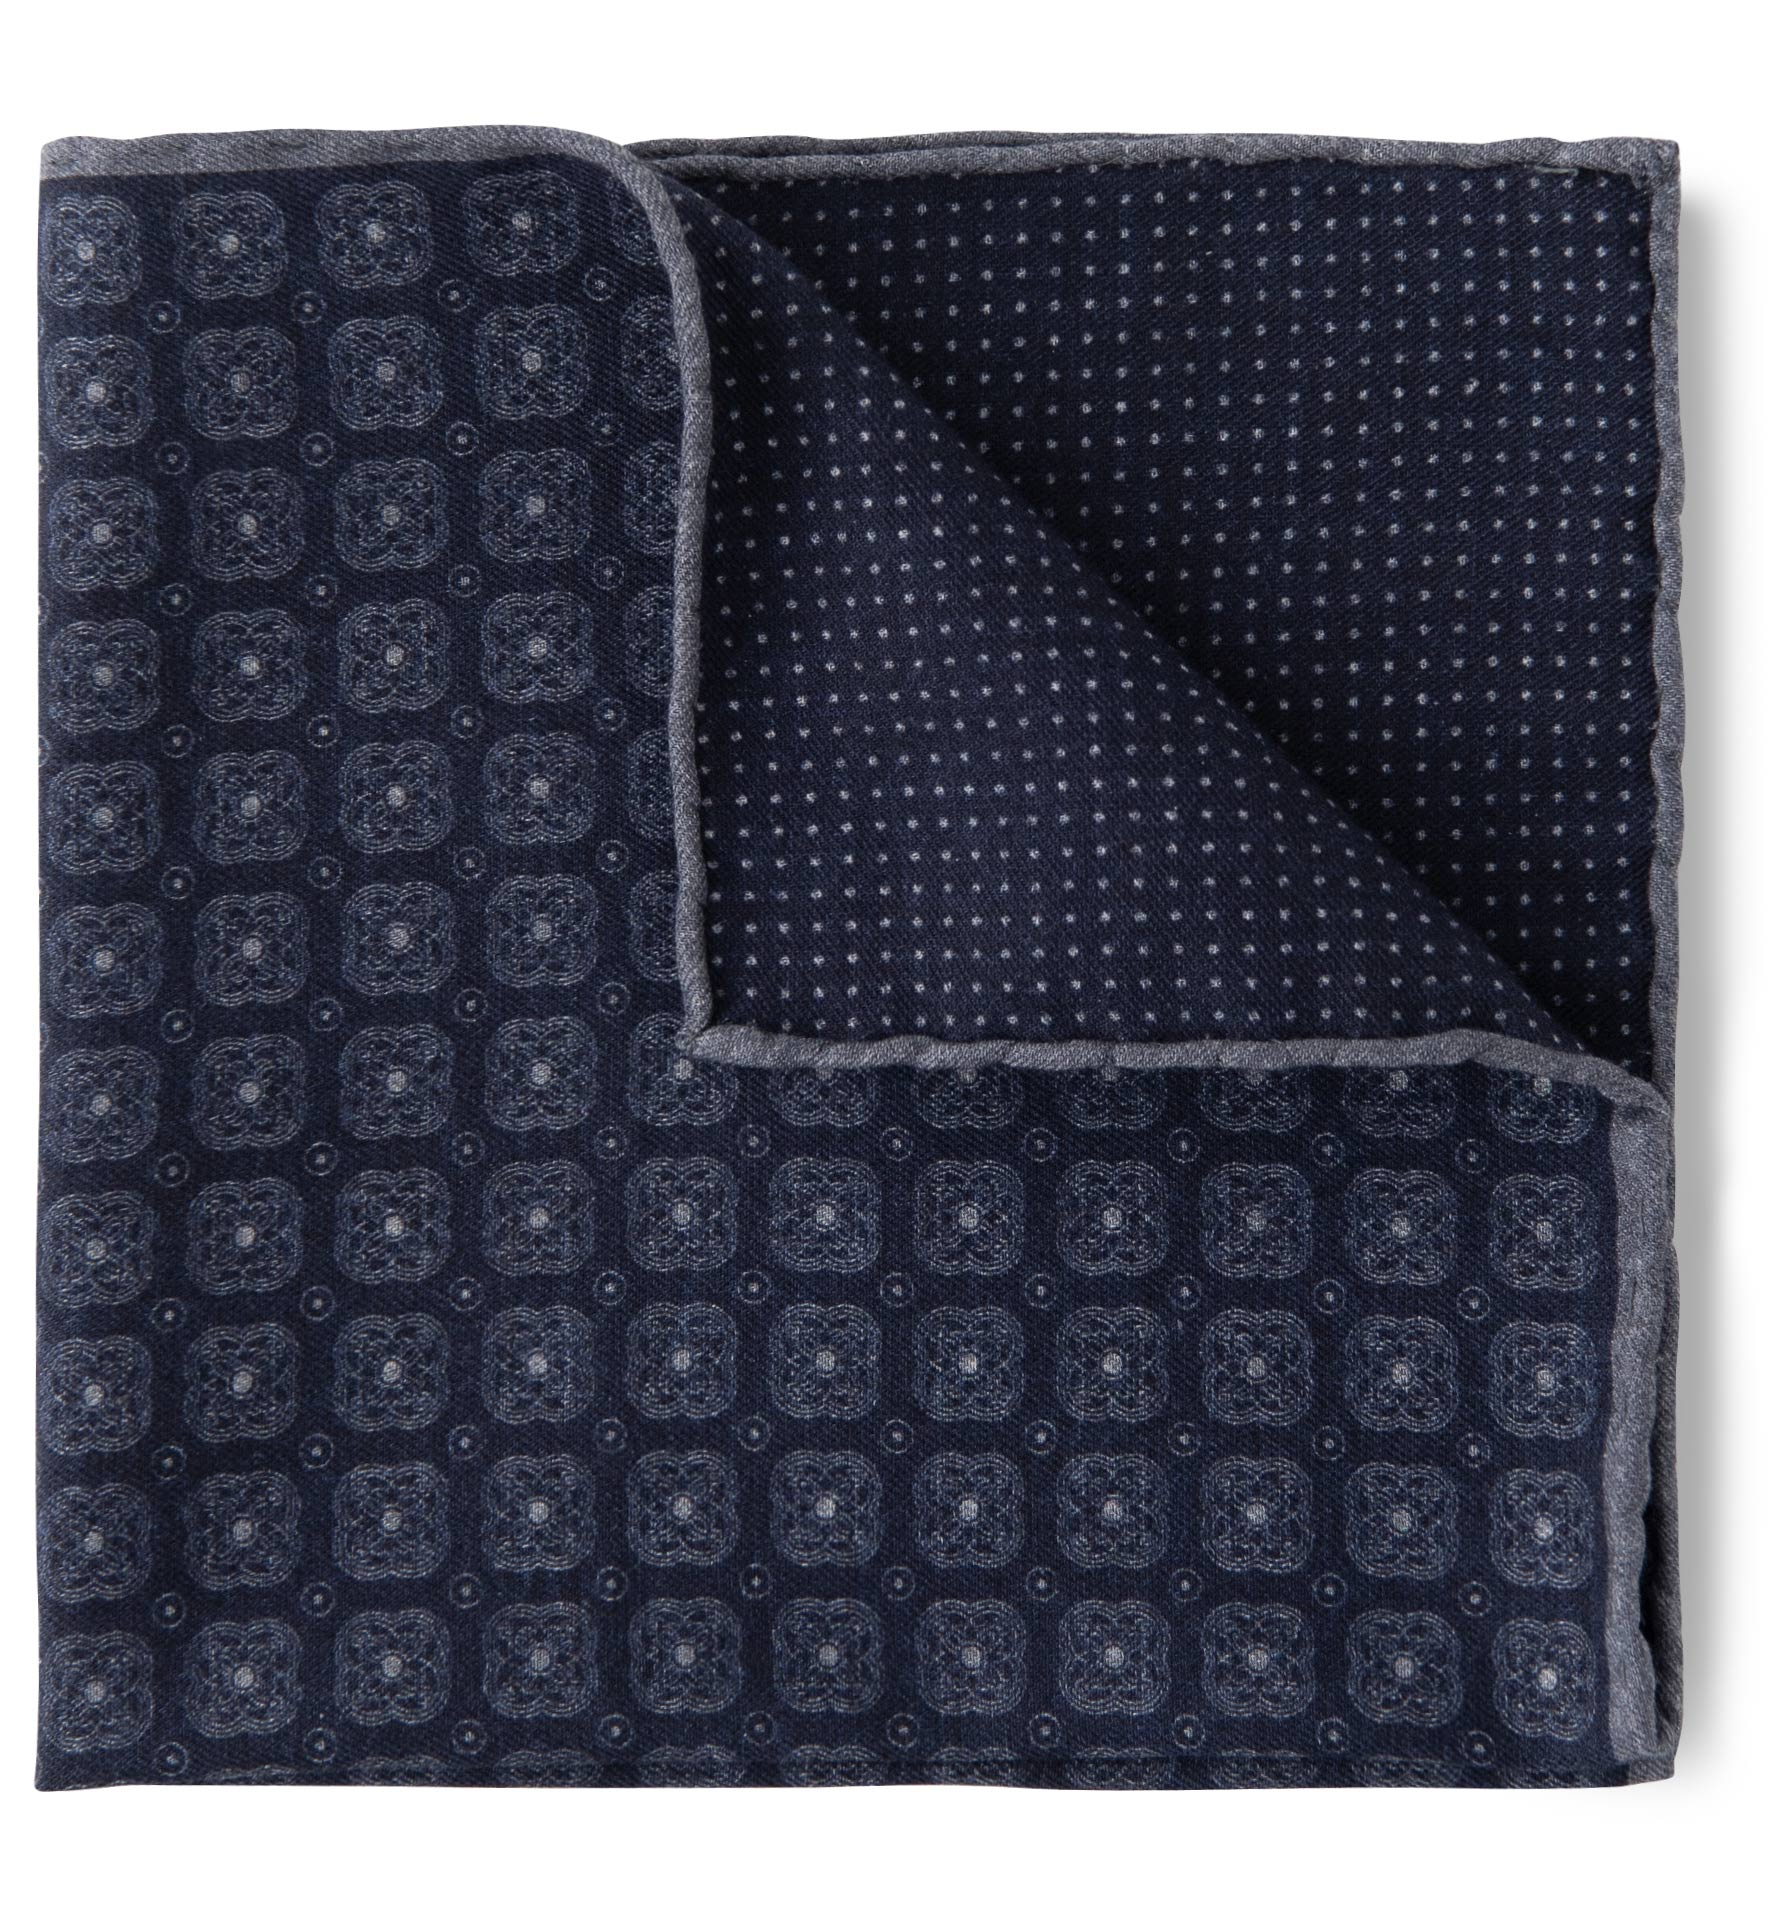 Zoom Image of Navy Foulard Print Cotton and Wool Pocket Square